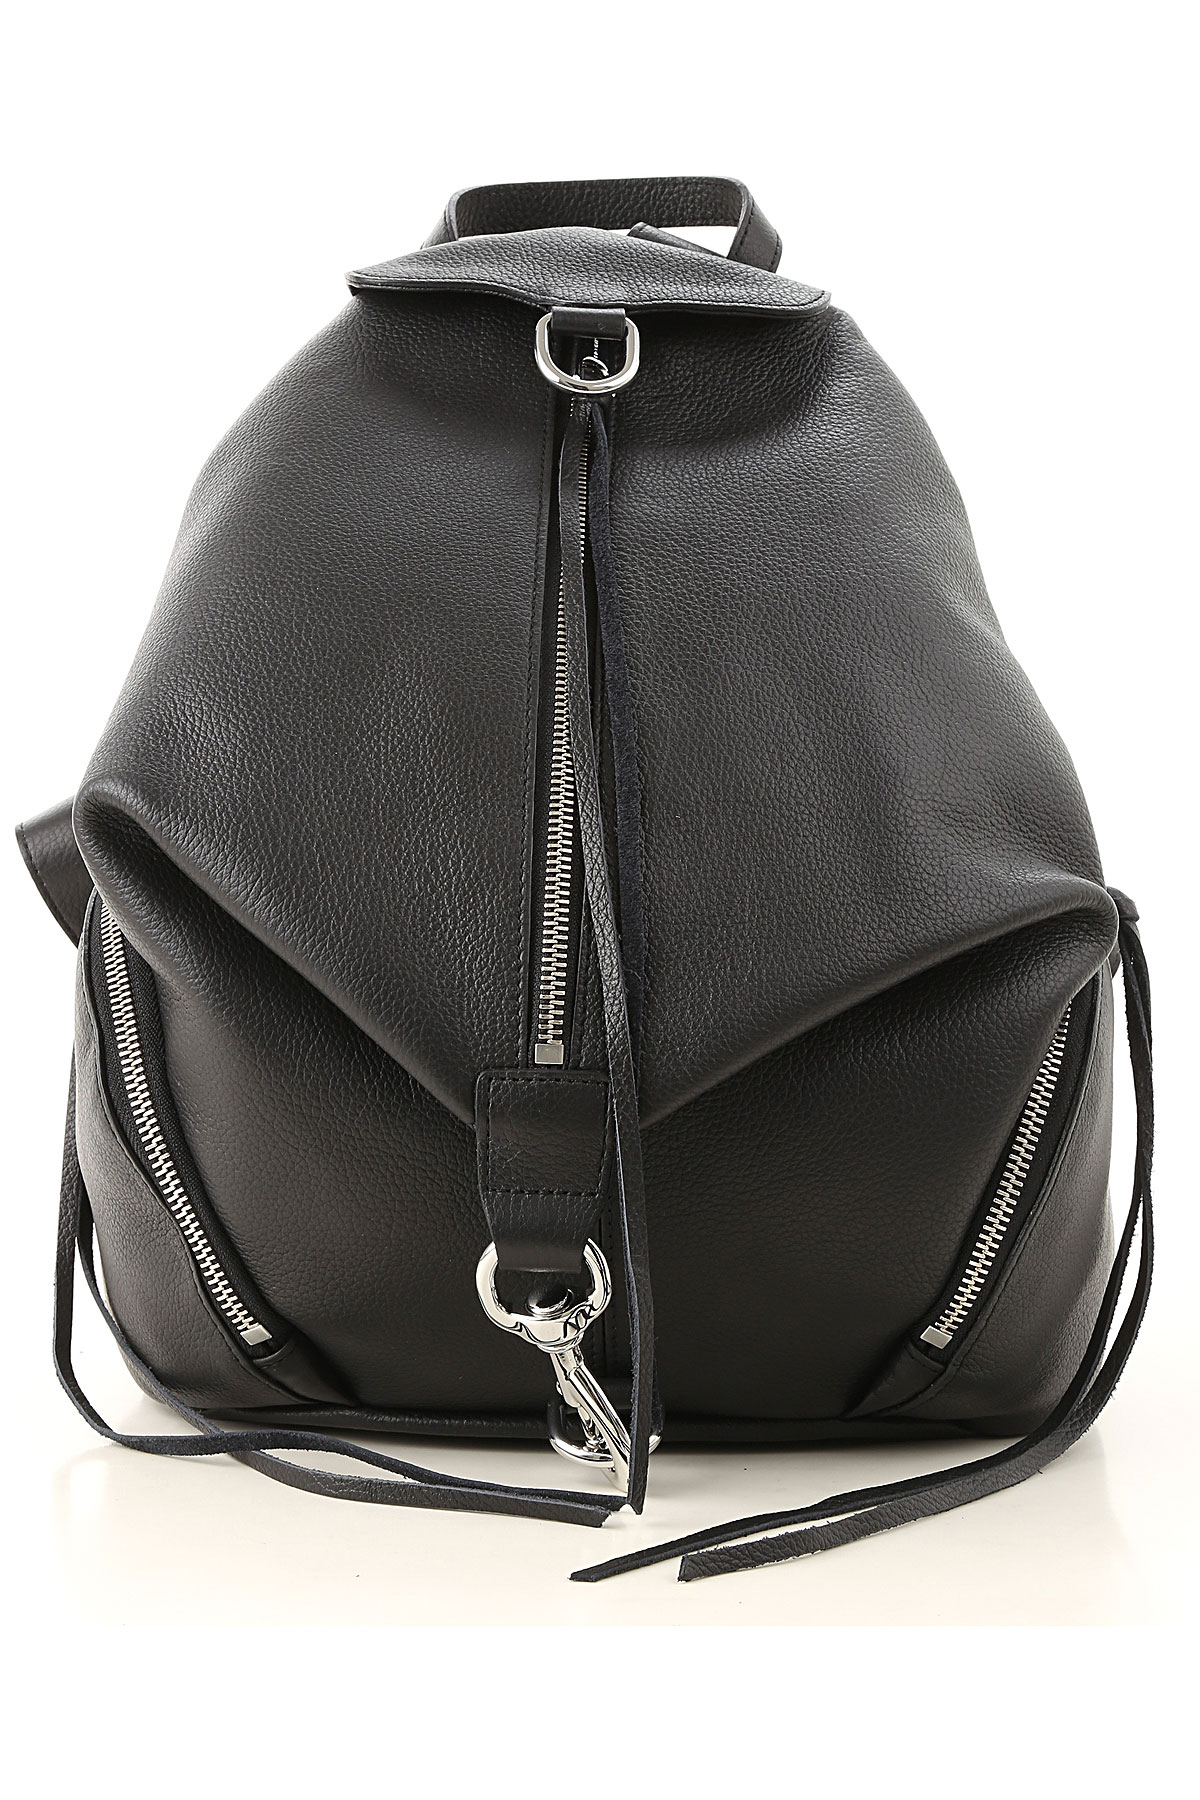 Image of Rebecca Minkoff Backpack for Women, Black, Leather, 2017